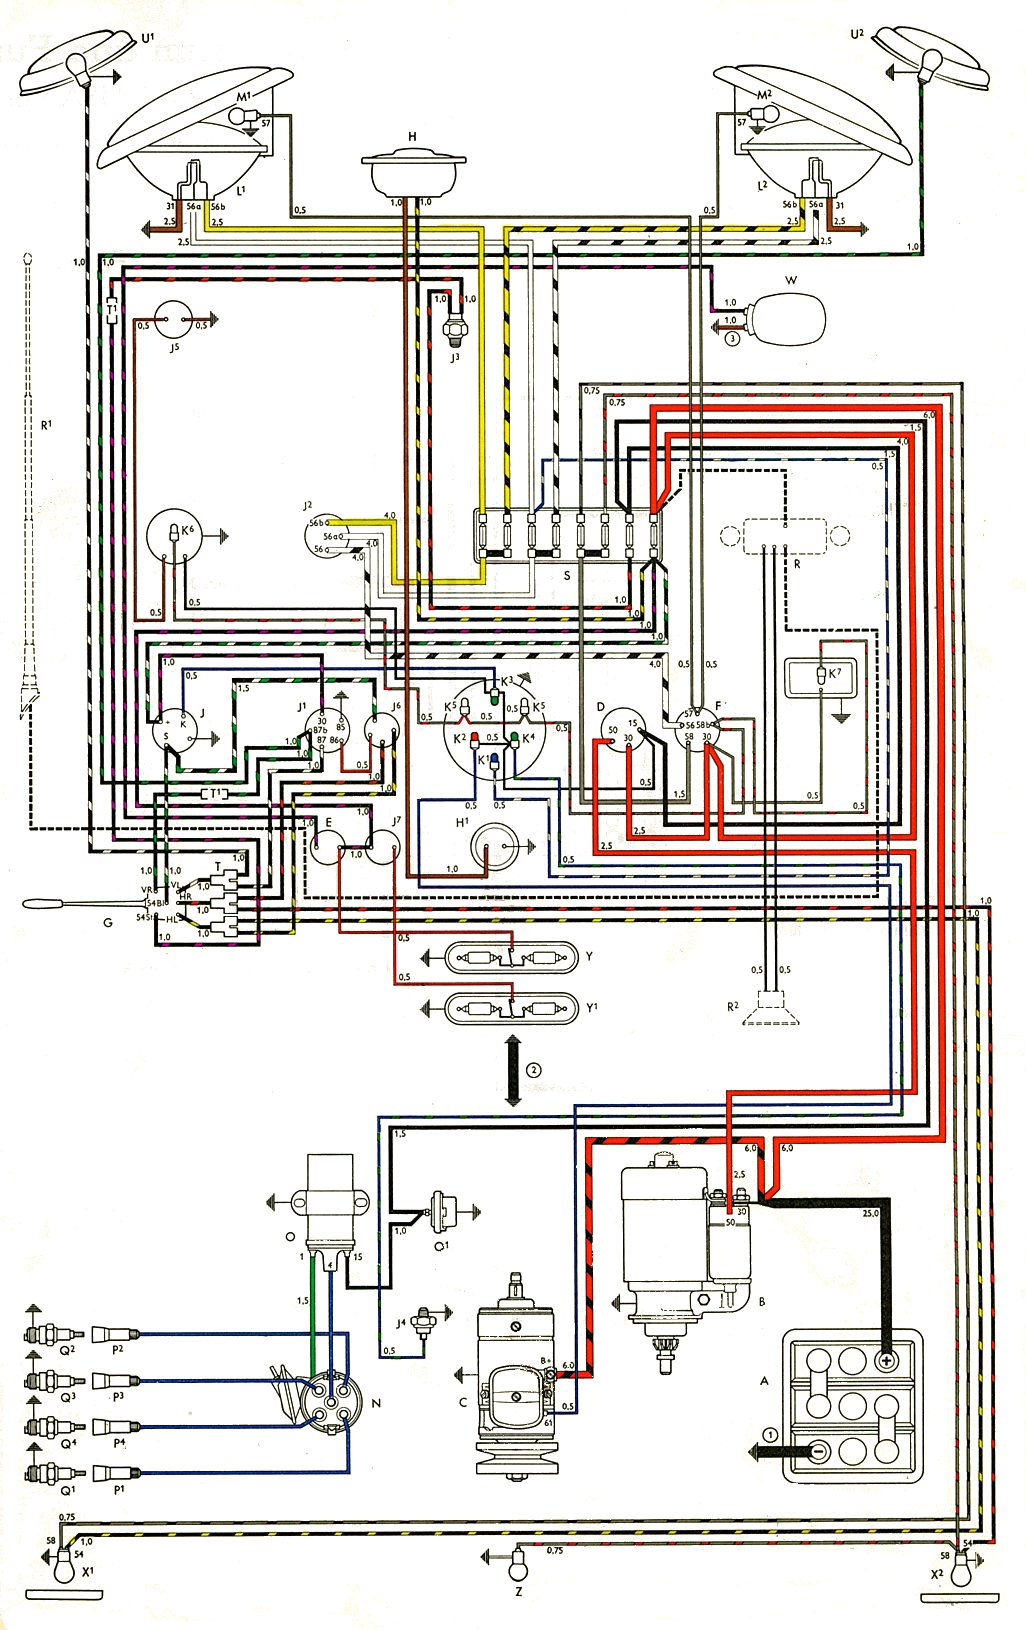 hight resolution of thesamba com type 2 wiring diagrams 1976 vw bus wiring schematic